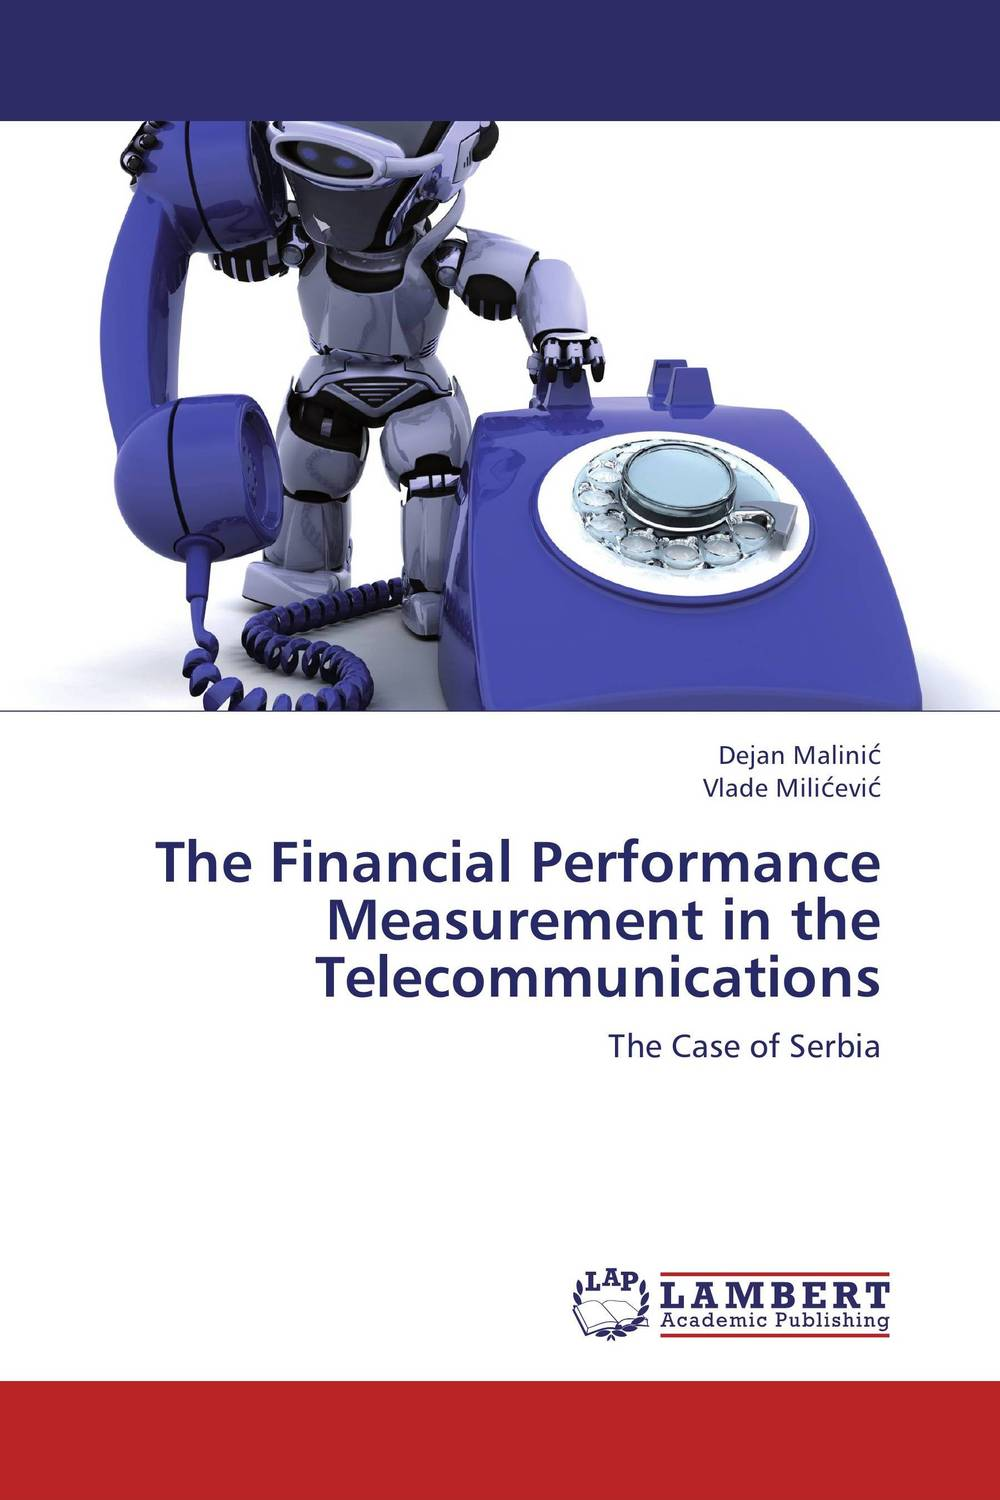 The Financial Performance Measurement in the Telecommunications financial performance analysis